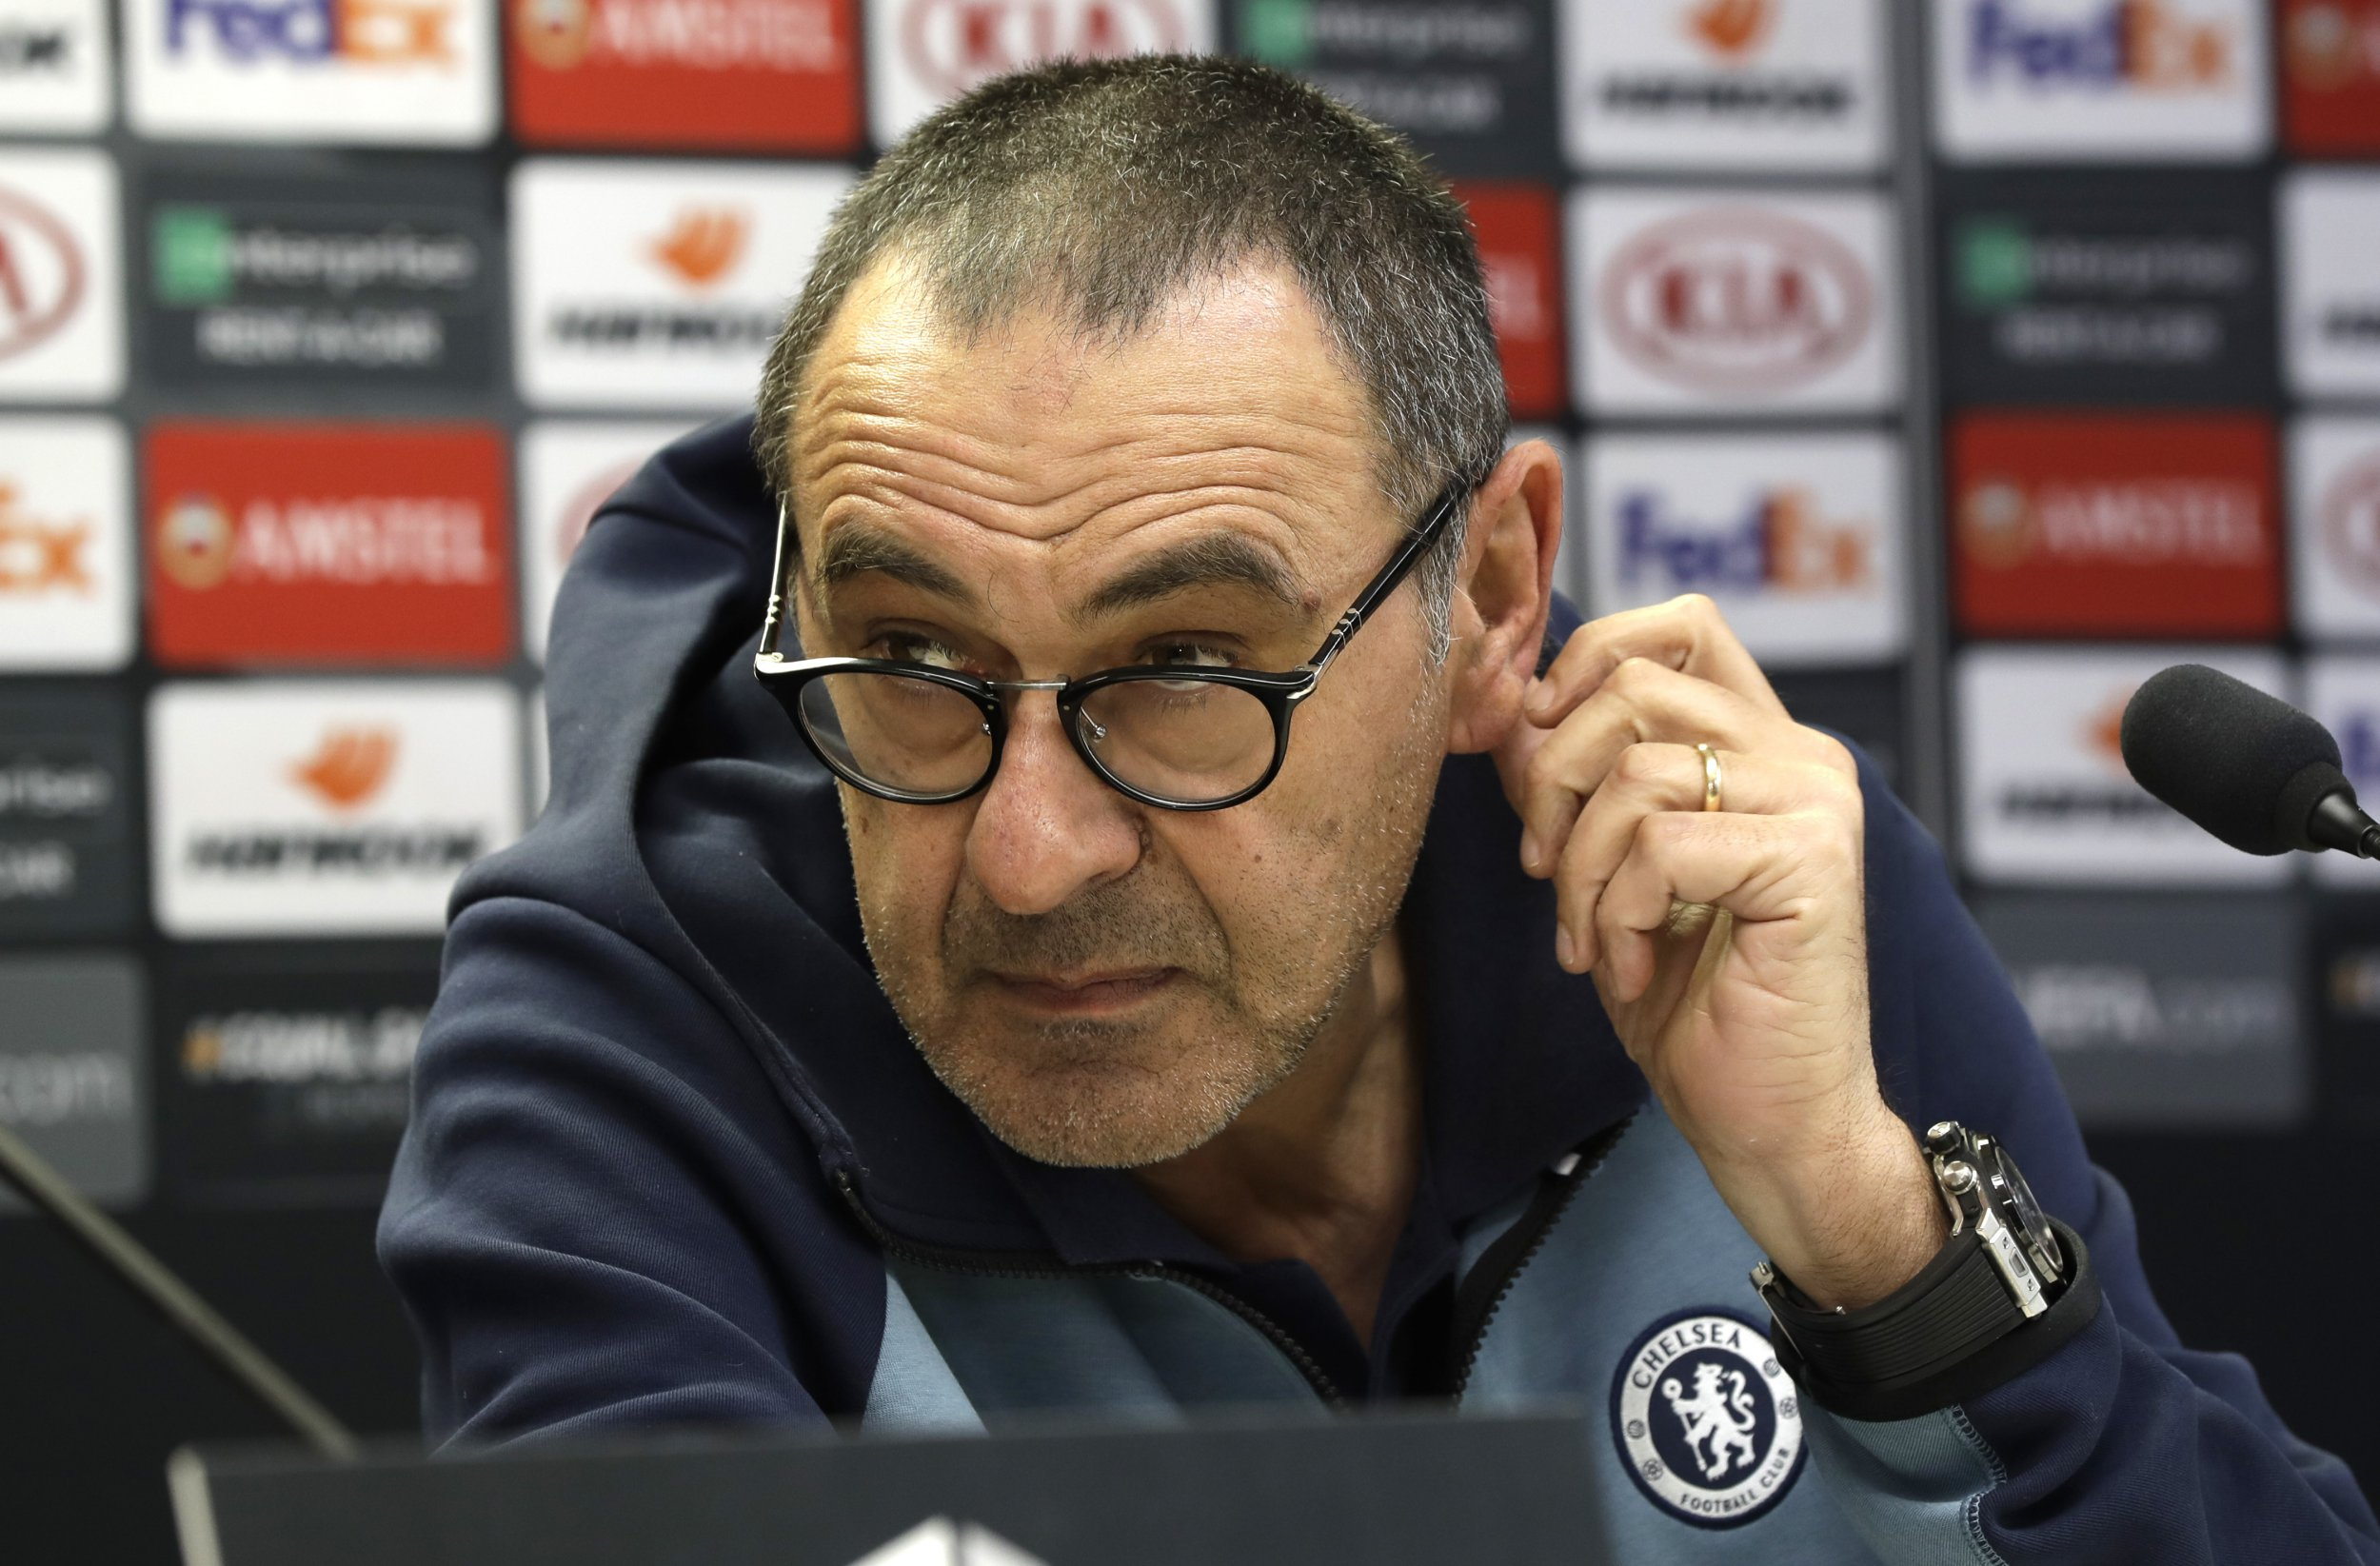 Slavia Chelsea Pinterest: Slavia Prague V Chelsea TV Channel, Live Stream, Odds